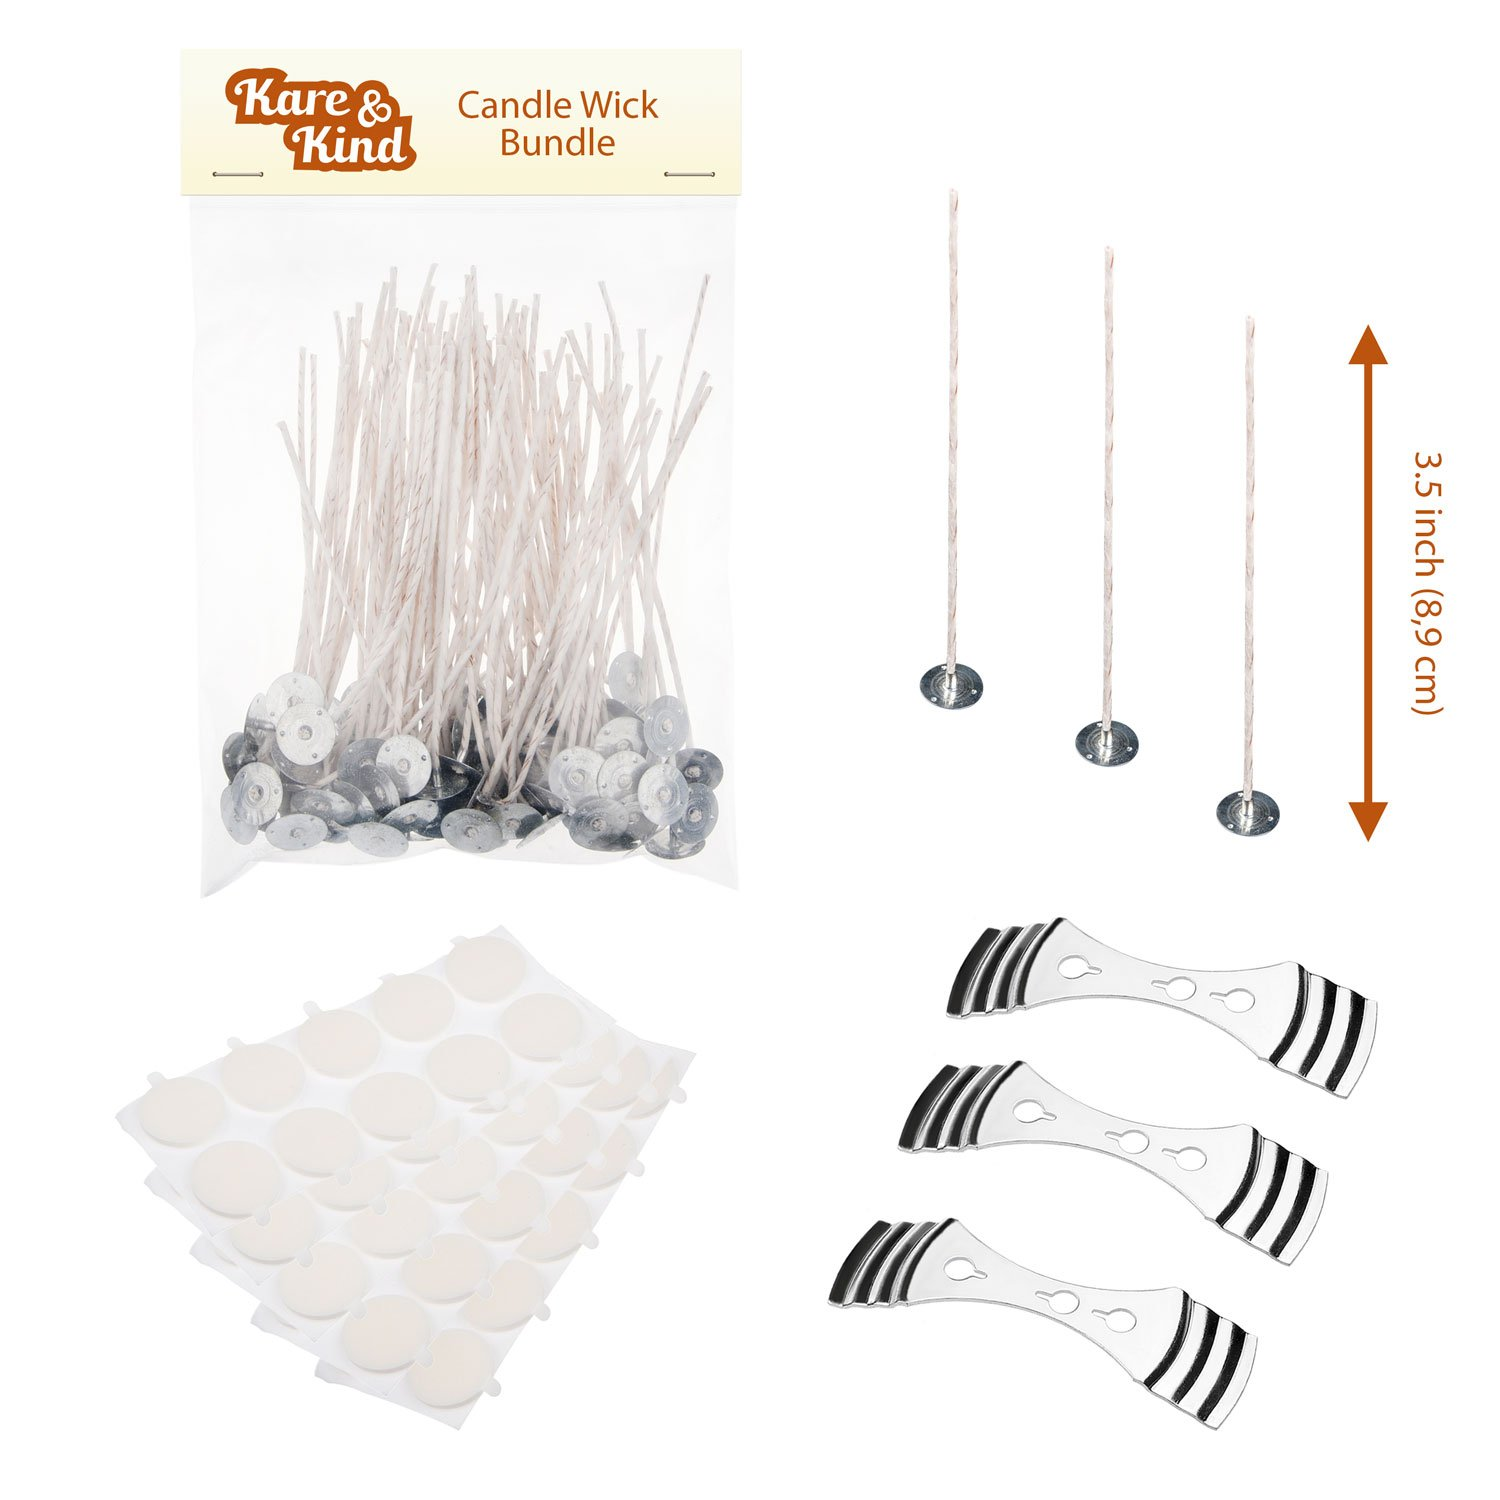 Candle Wick Bundle: 50 Candle Wicks, 50 Stickers and 3 Wick Holders - Easy Positioning - Wicks Coated With Natural Soy Wax, Cotton Threads Woven with Paper - Contains No Lead, Zinc or Other Metals Kare & Kind